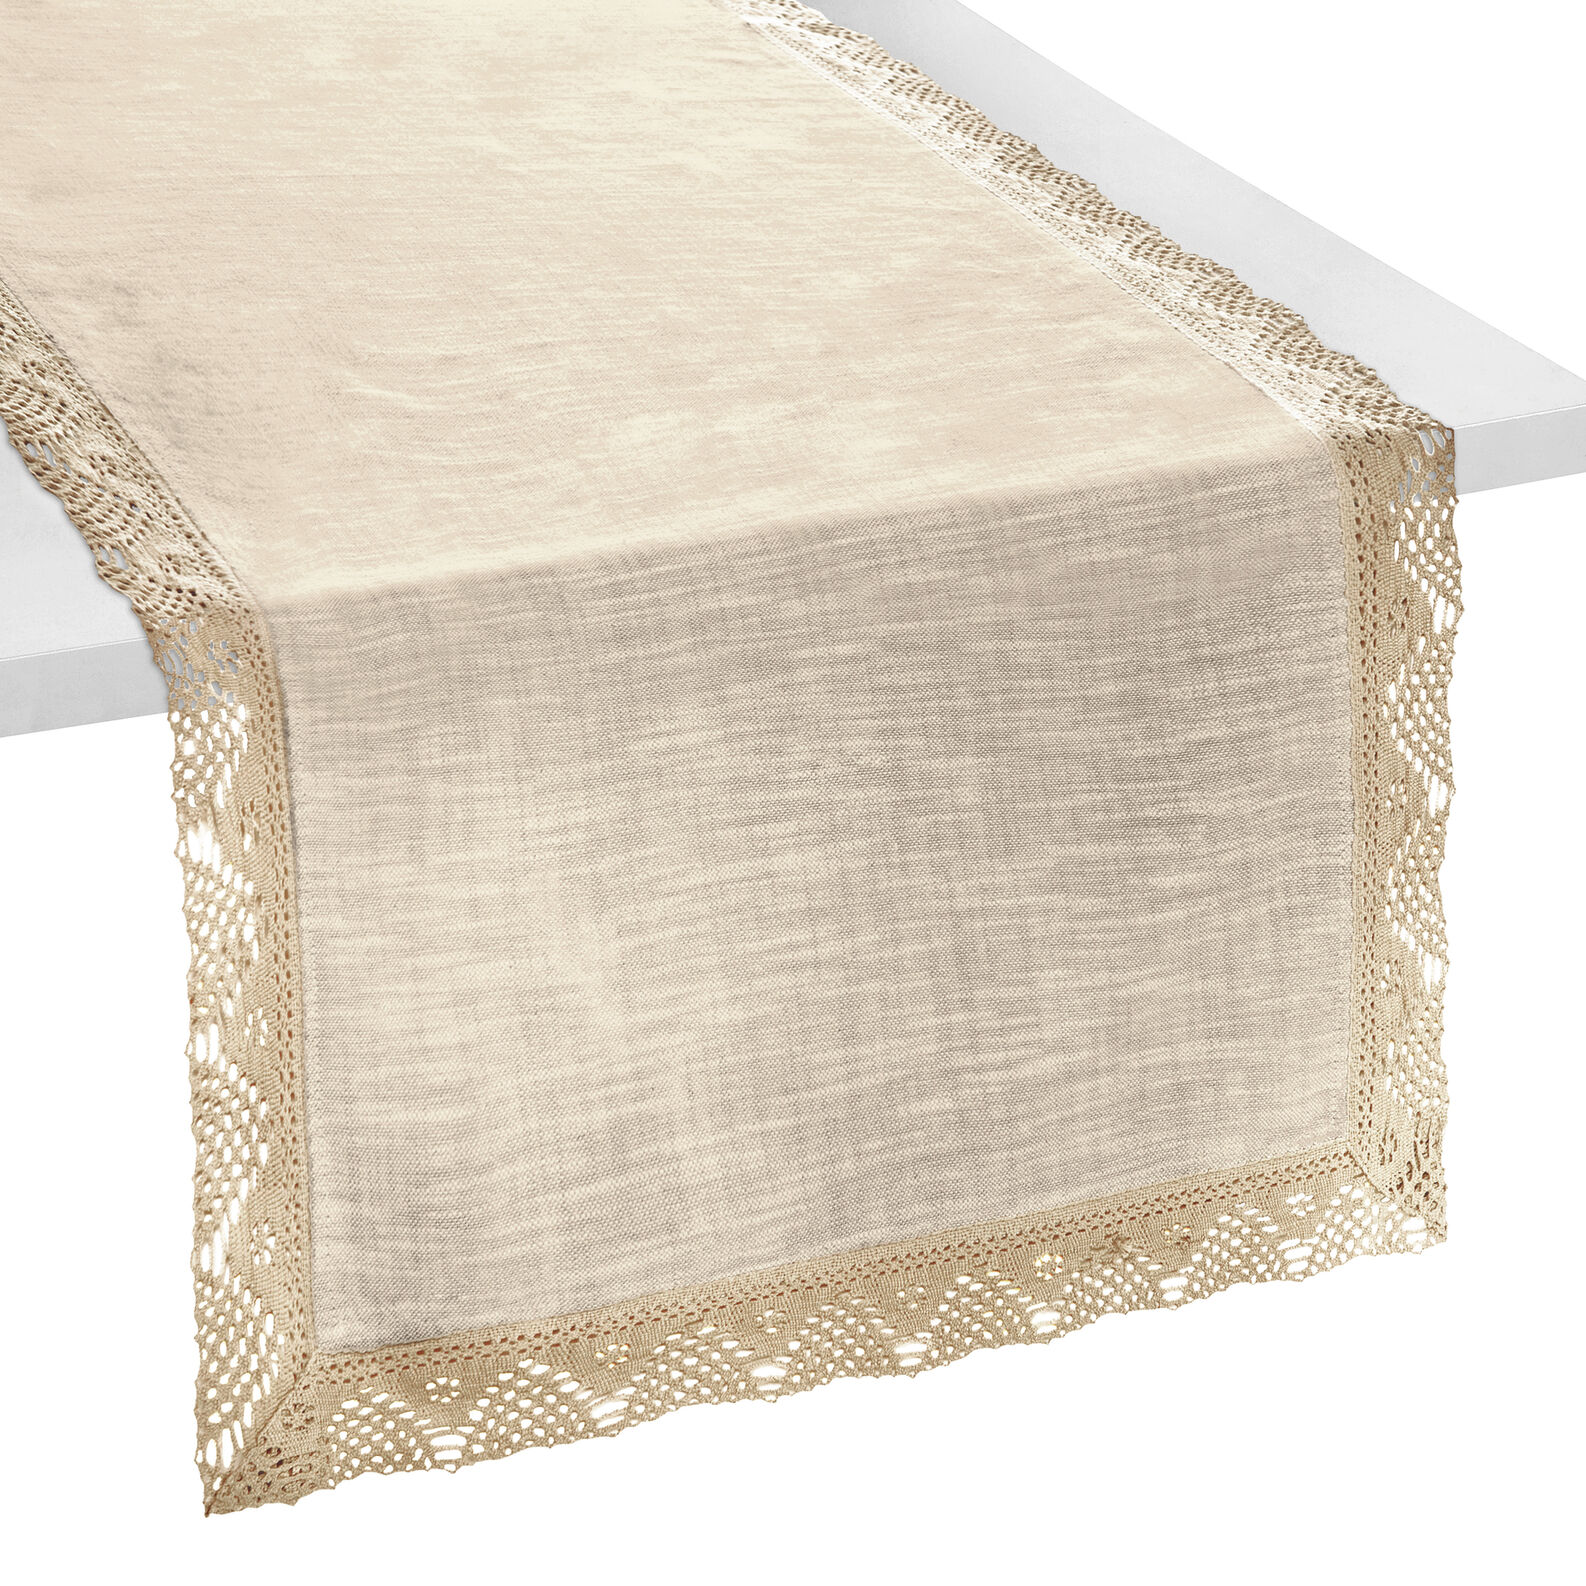 Mélange table runner with lace trim